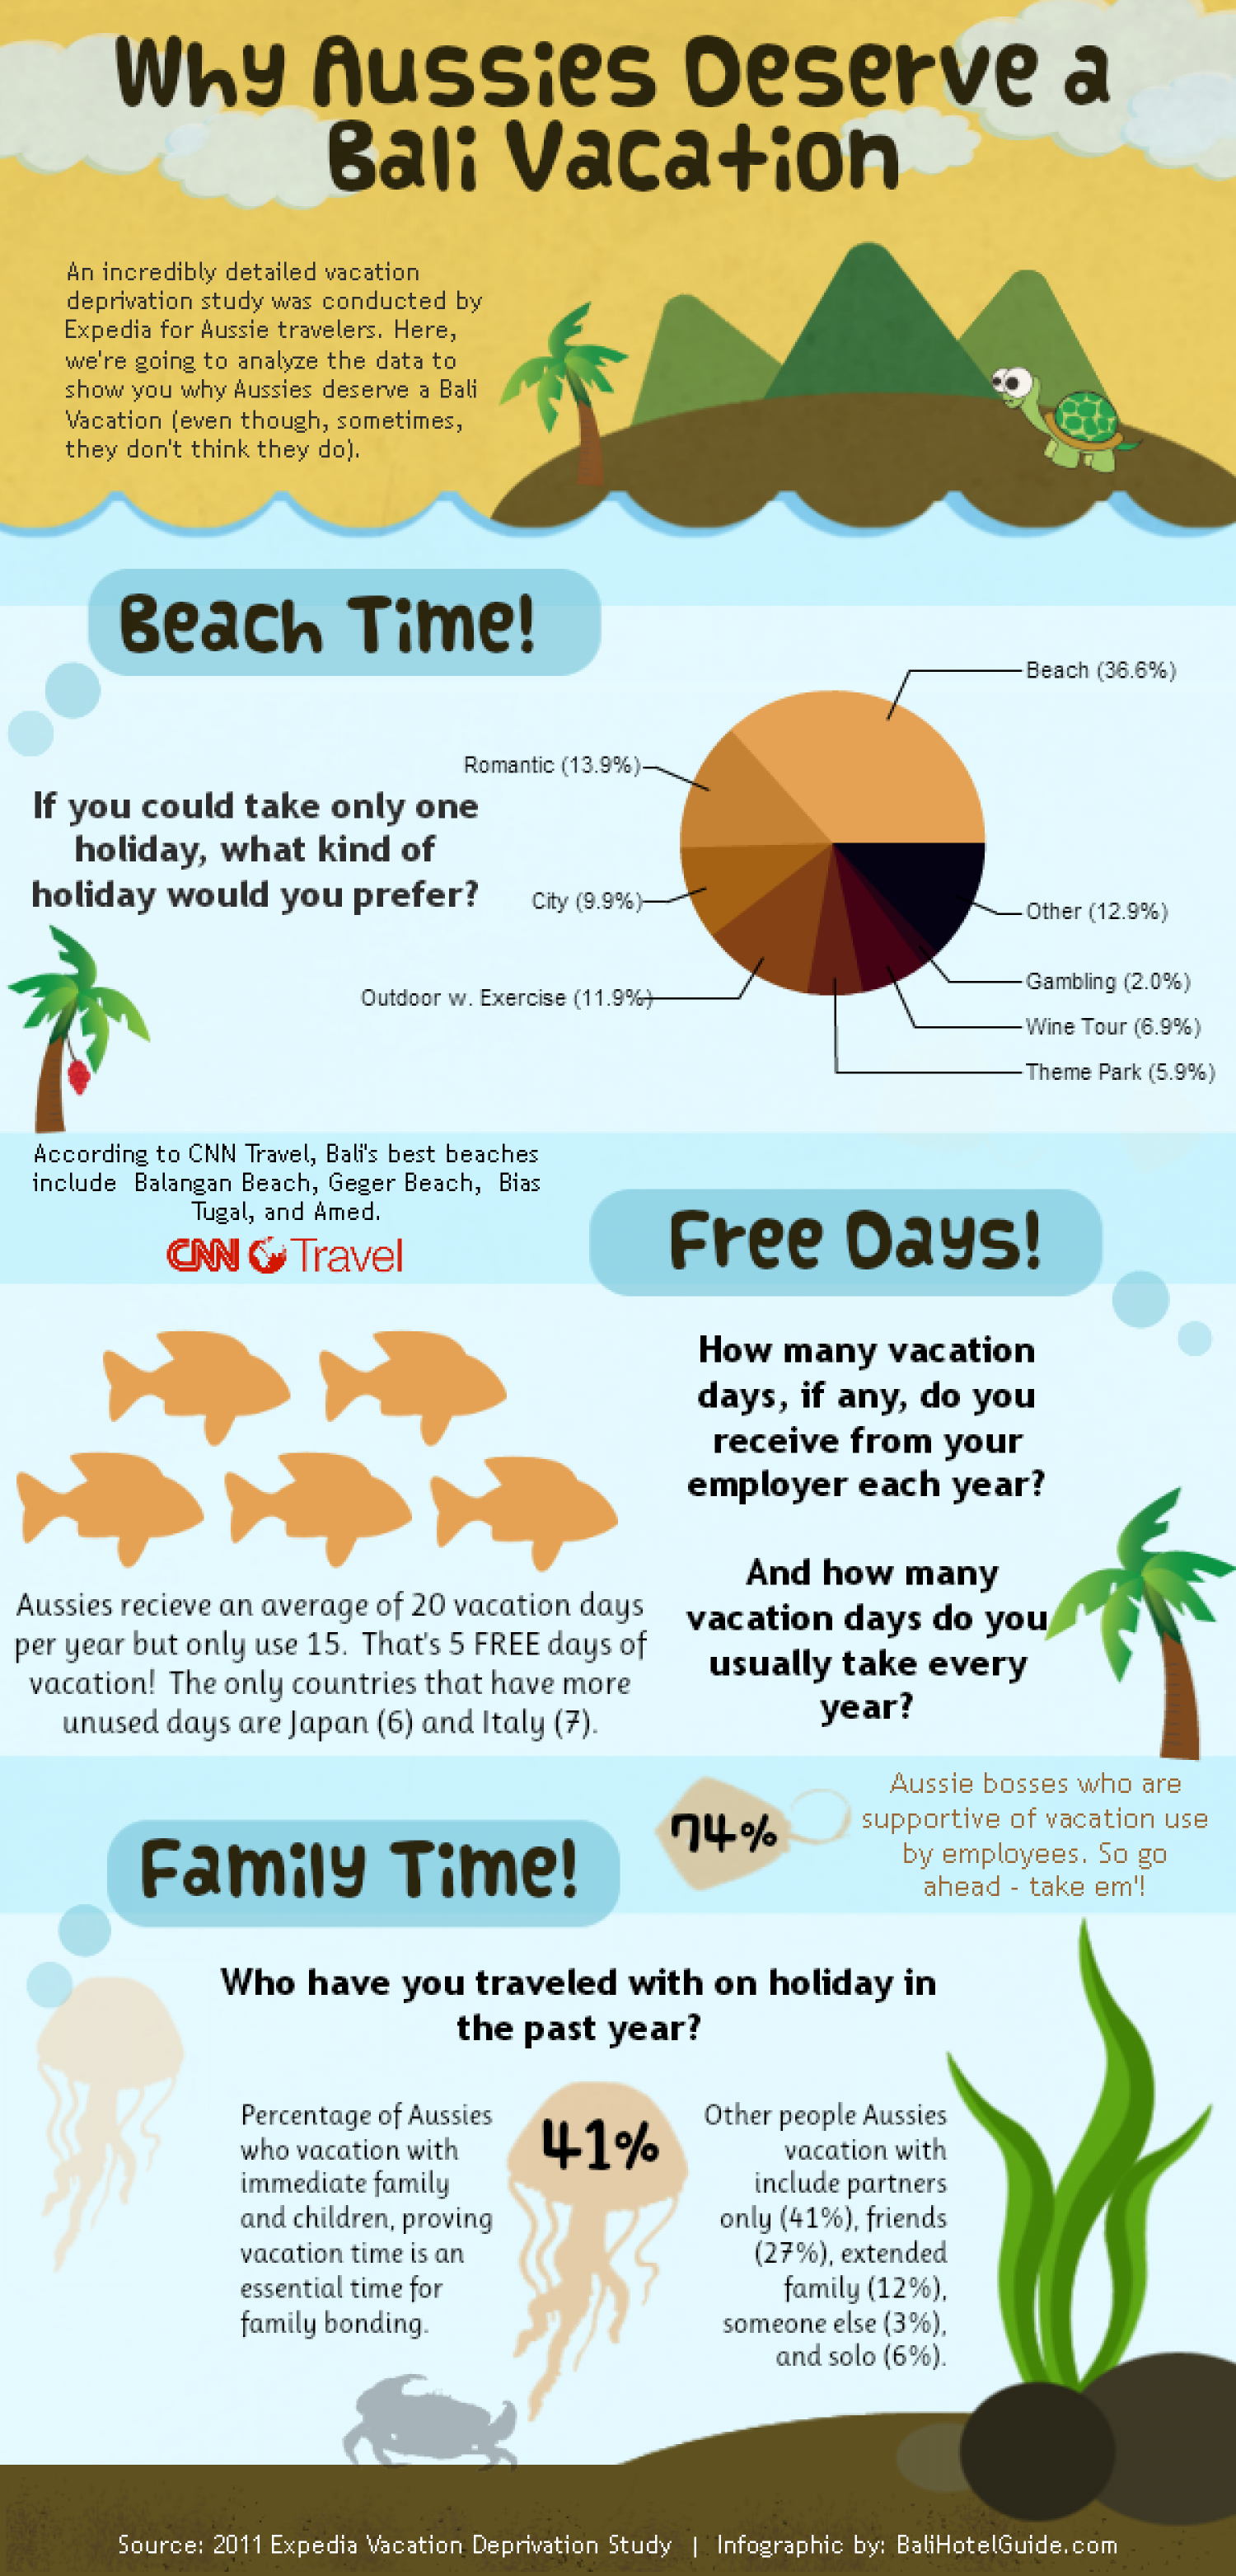 Why Aussies Deserve a Bali Vacation Infographic